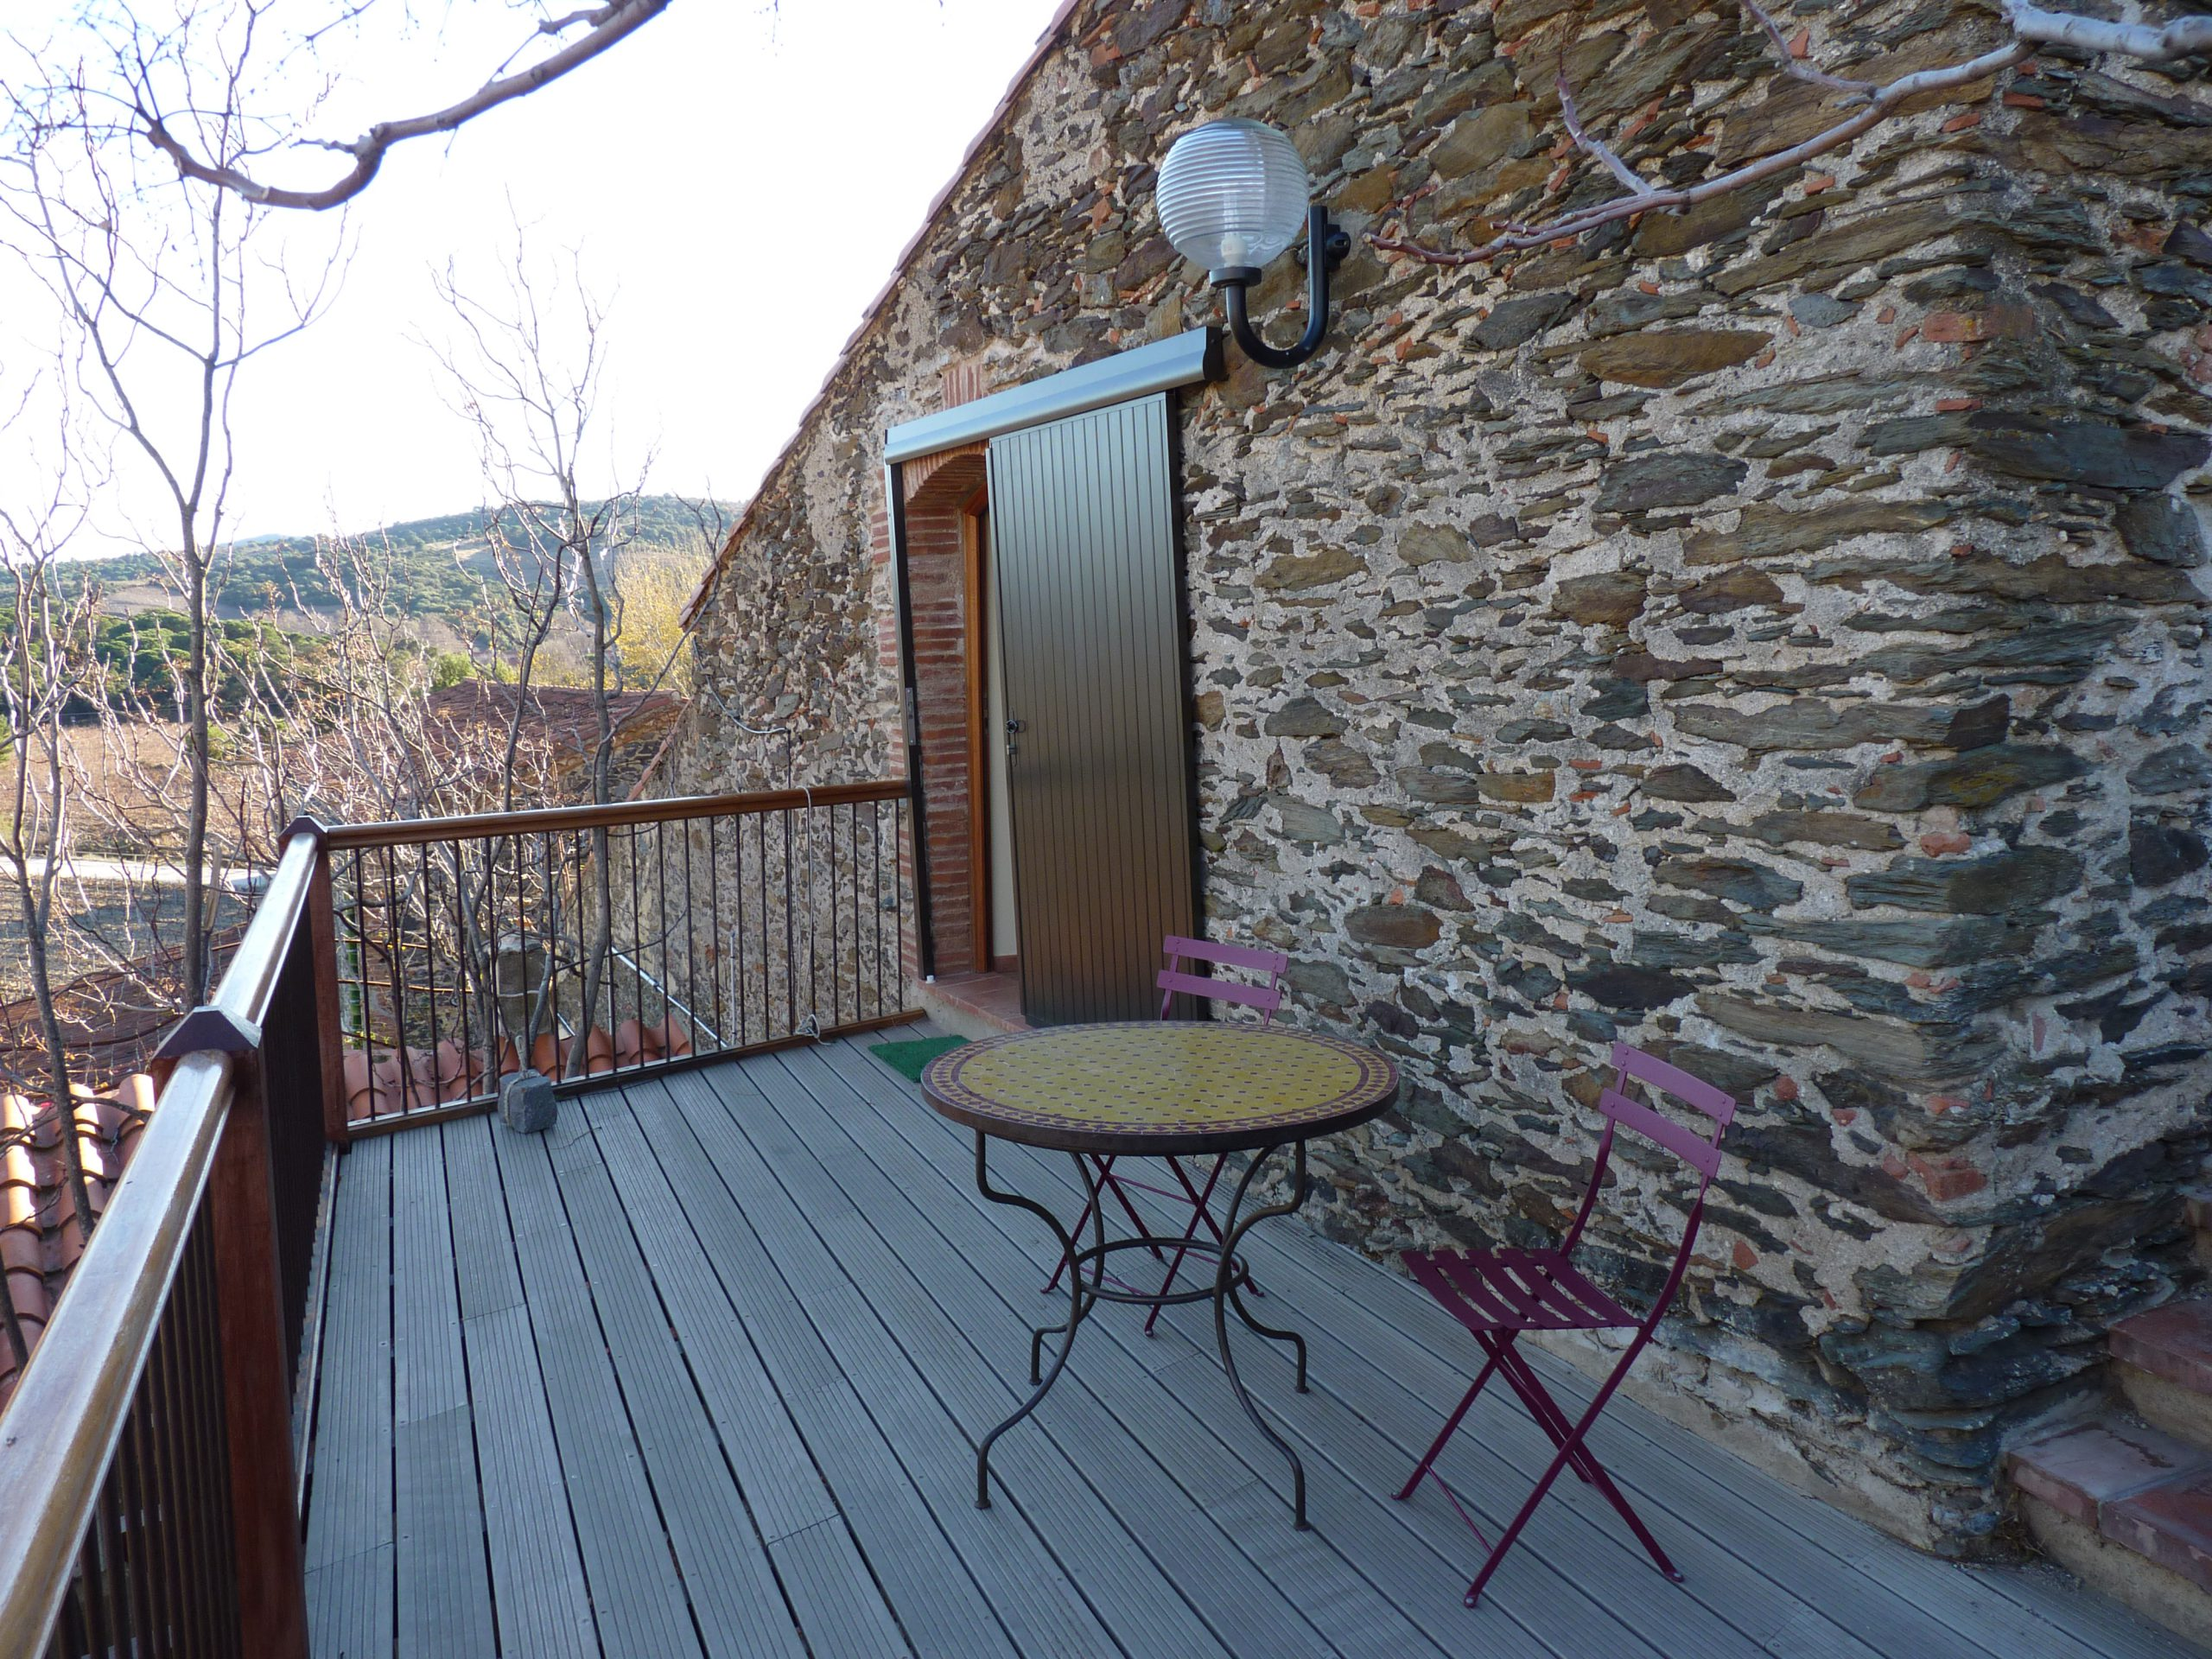 appartement-studio-location-domaine-valcros-paulilles-port-vendres-chambres-hotes-domaine-valcros-banyuls-collioure-4